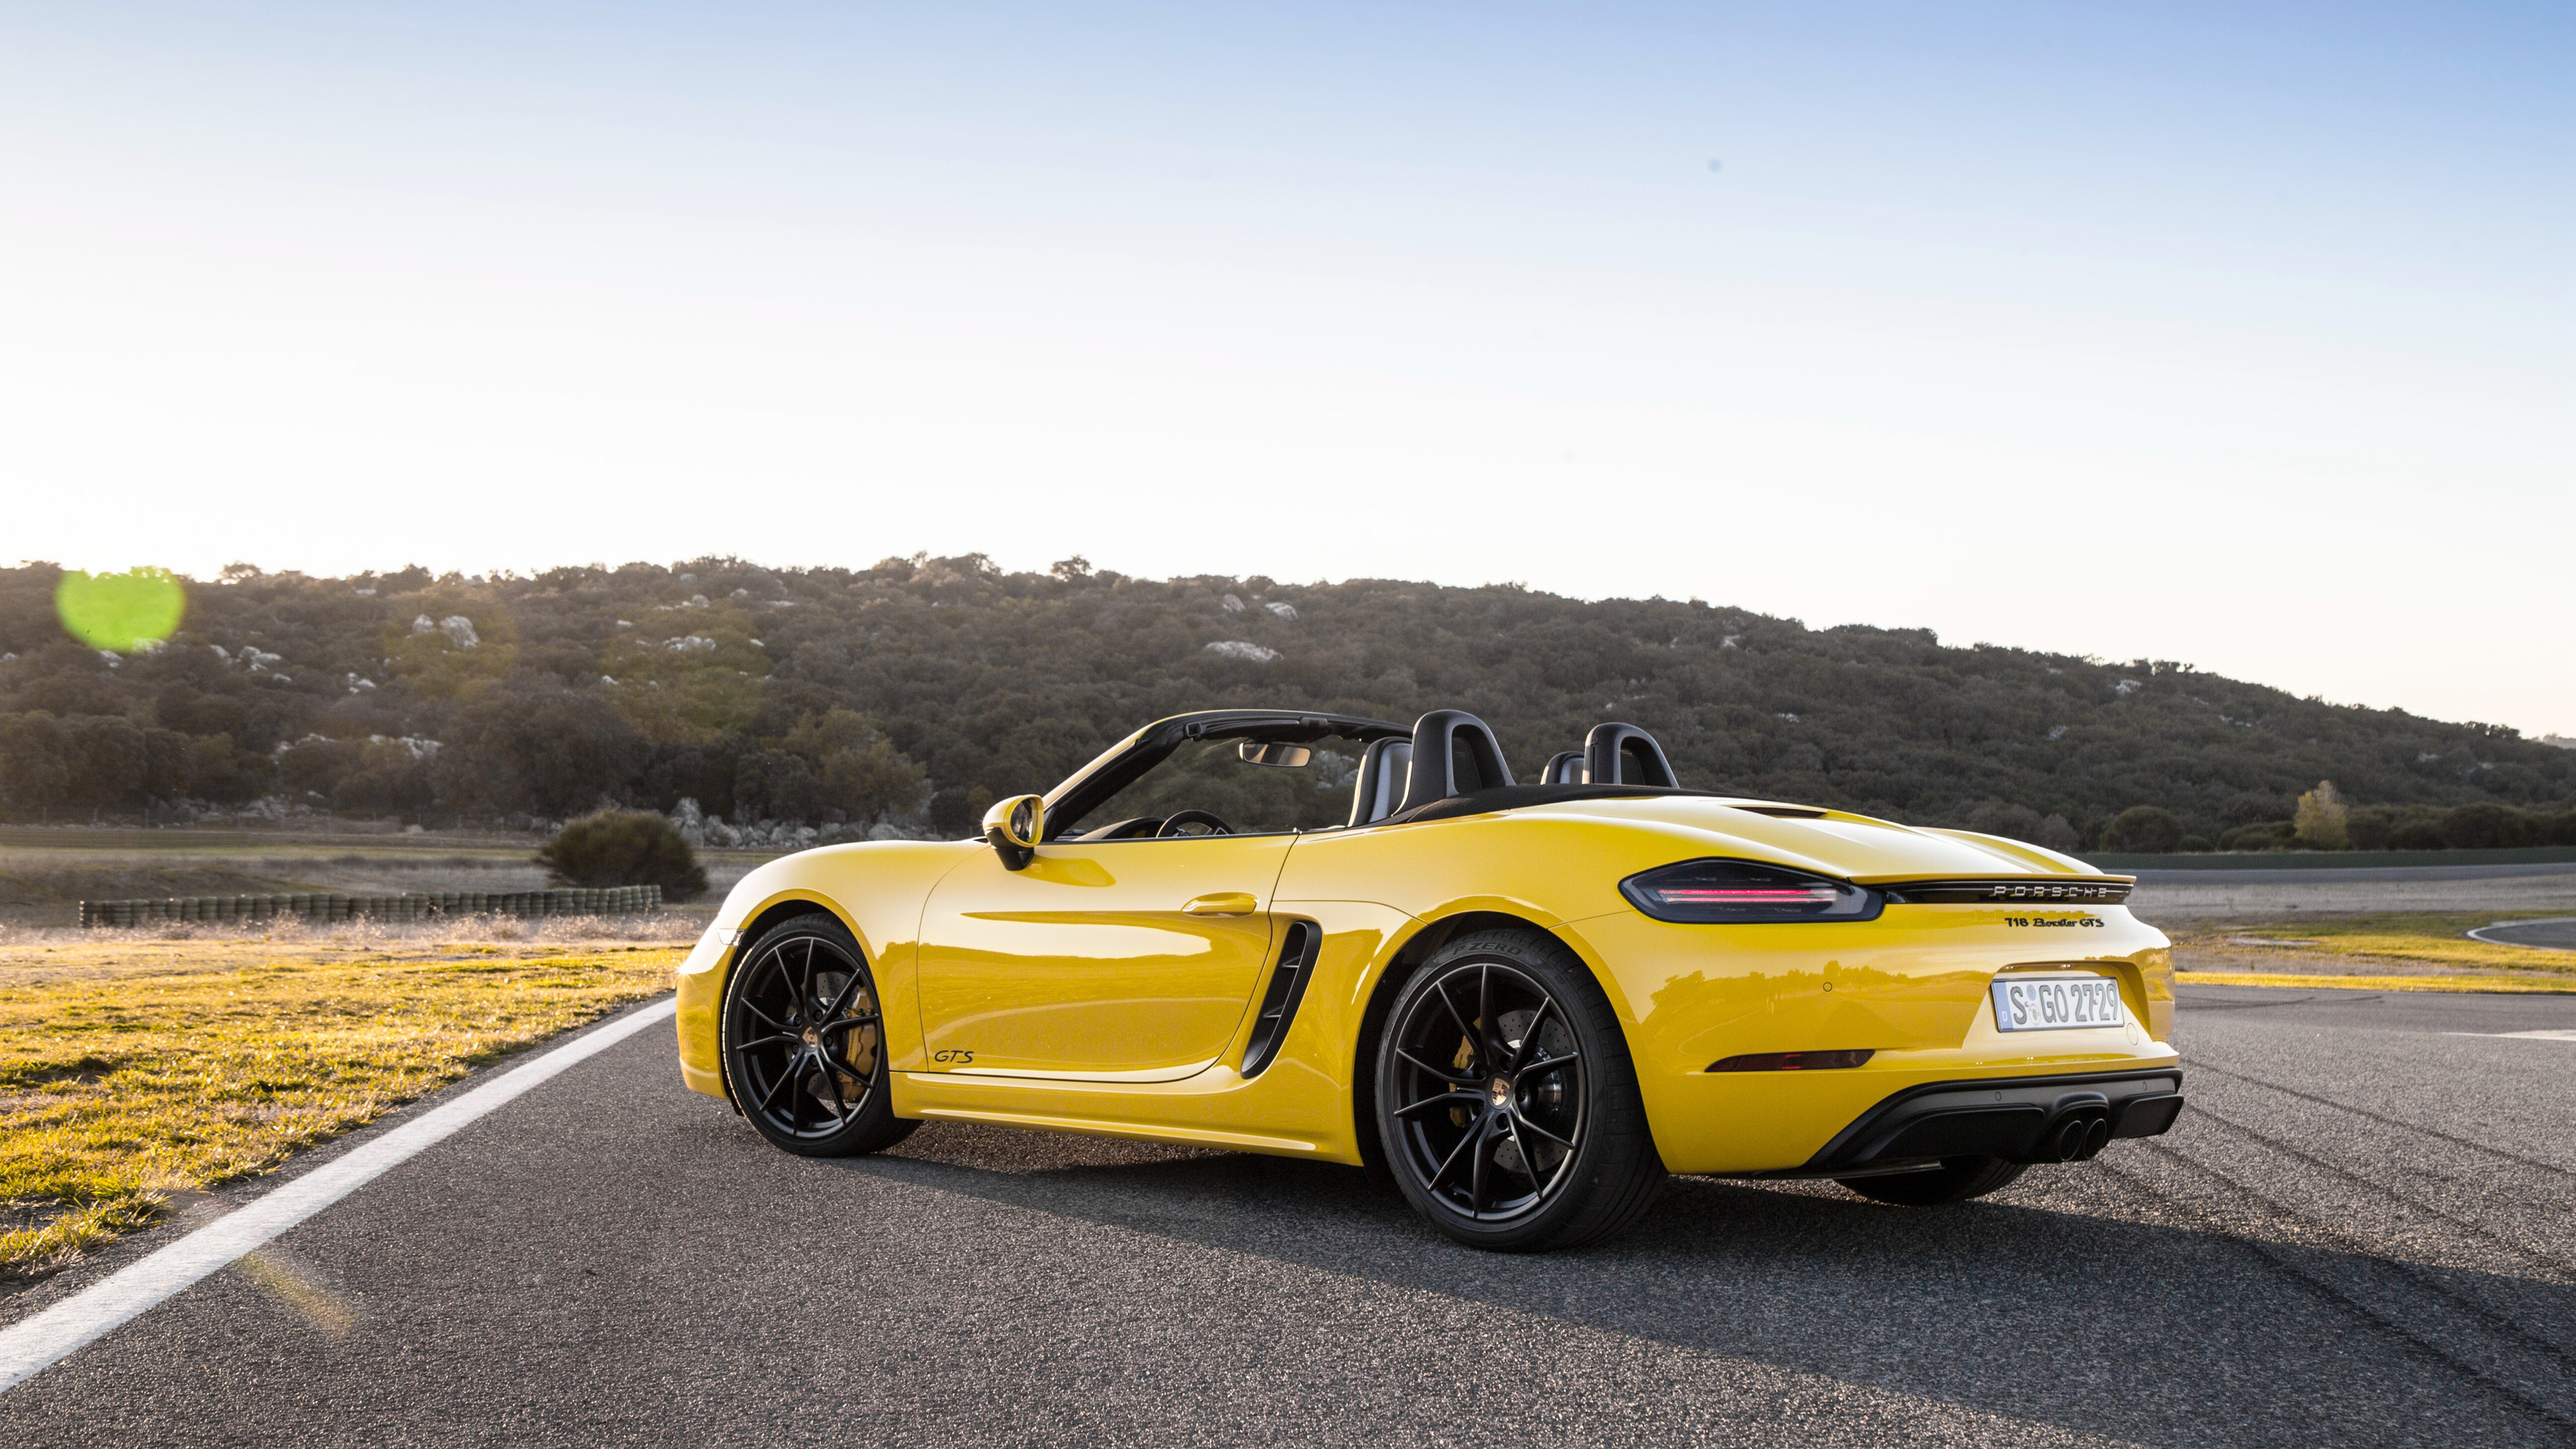 porsche 718 boxster gts 4k 1539108064 - Porsche 718 Boxster Gts 4k - porsche wallpapers, porsche 718 wallpapers, hd-wallpapers, 4k-wallpapers, 2017 cars wallpapers